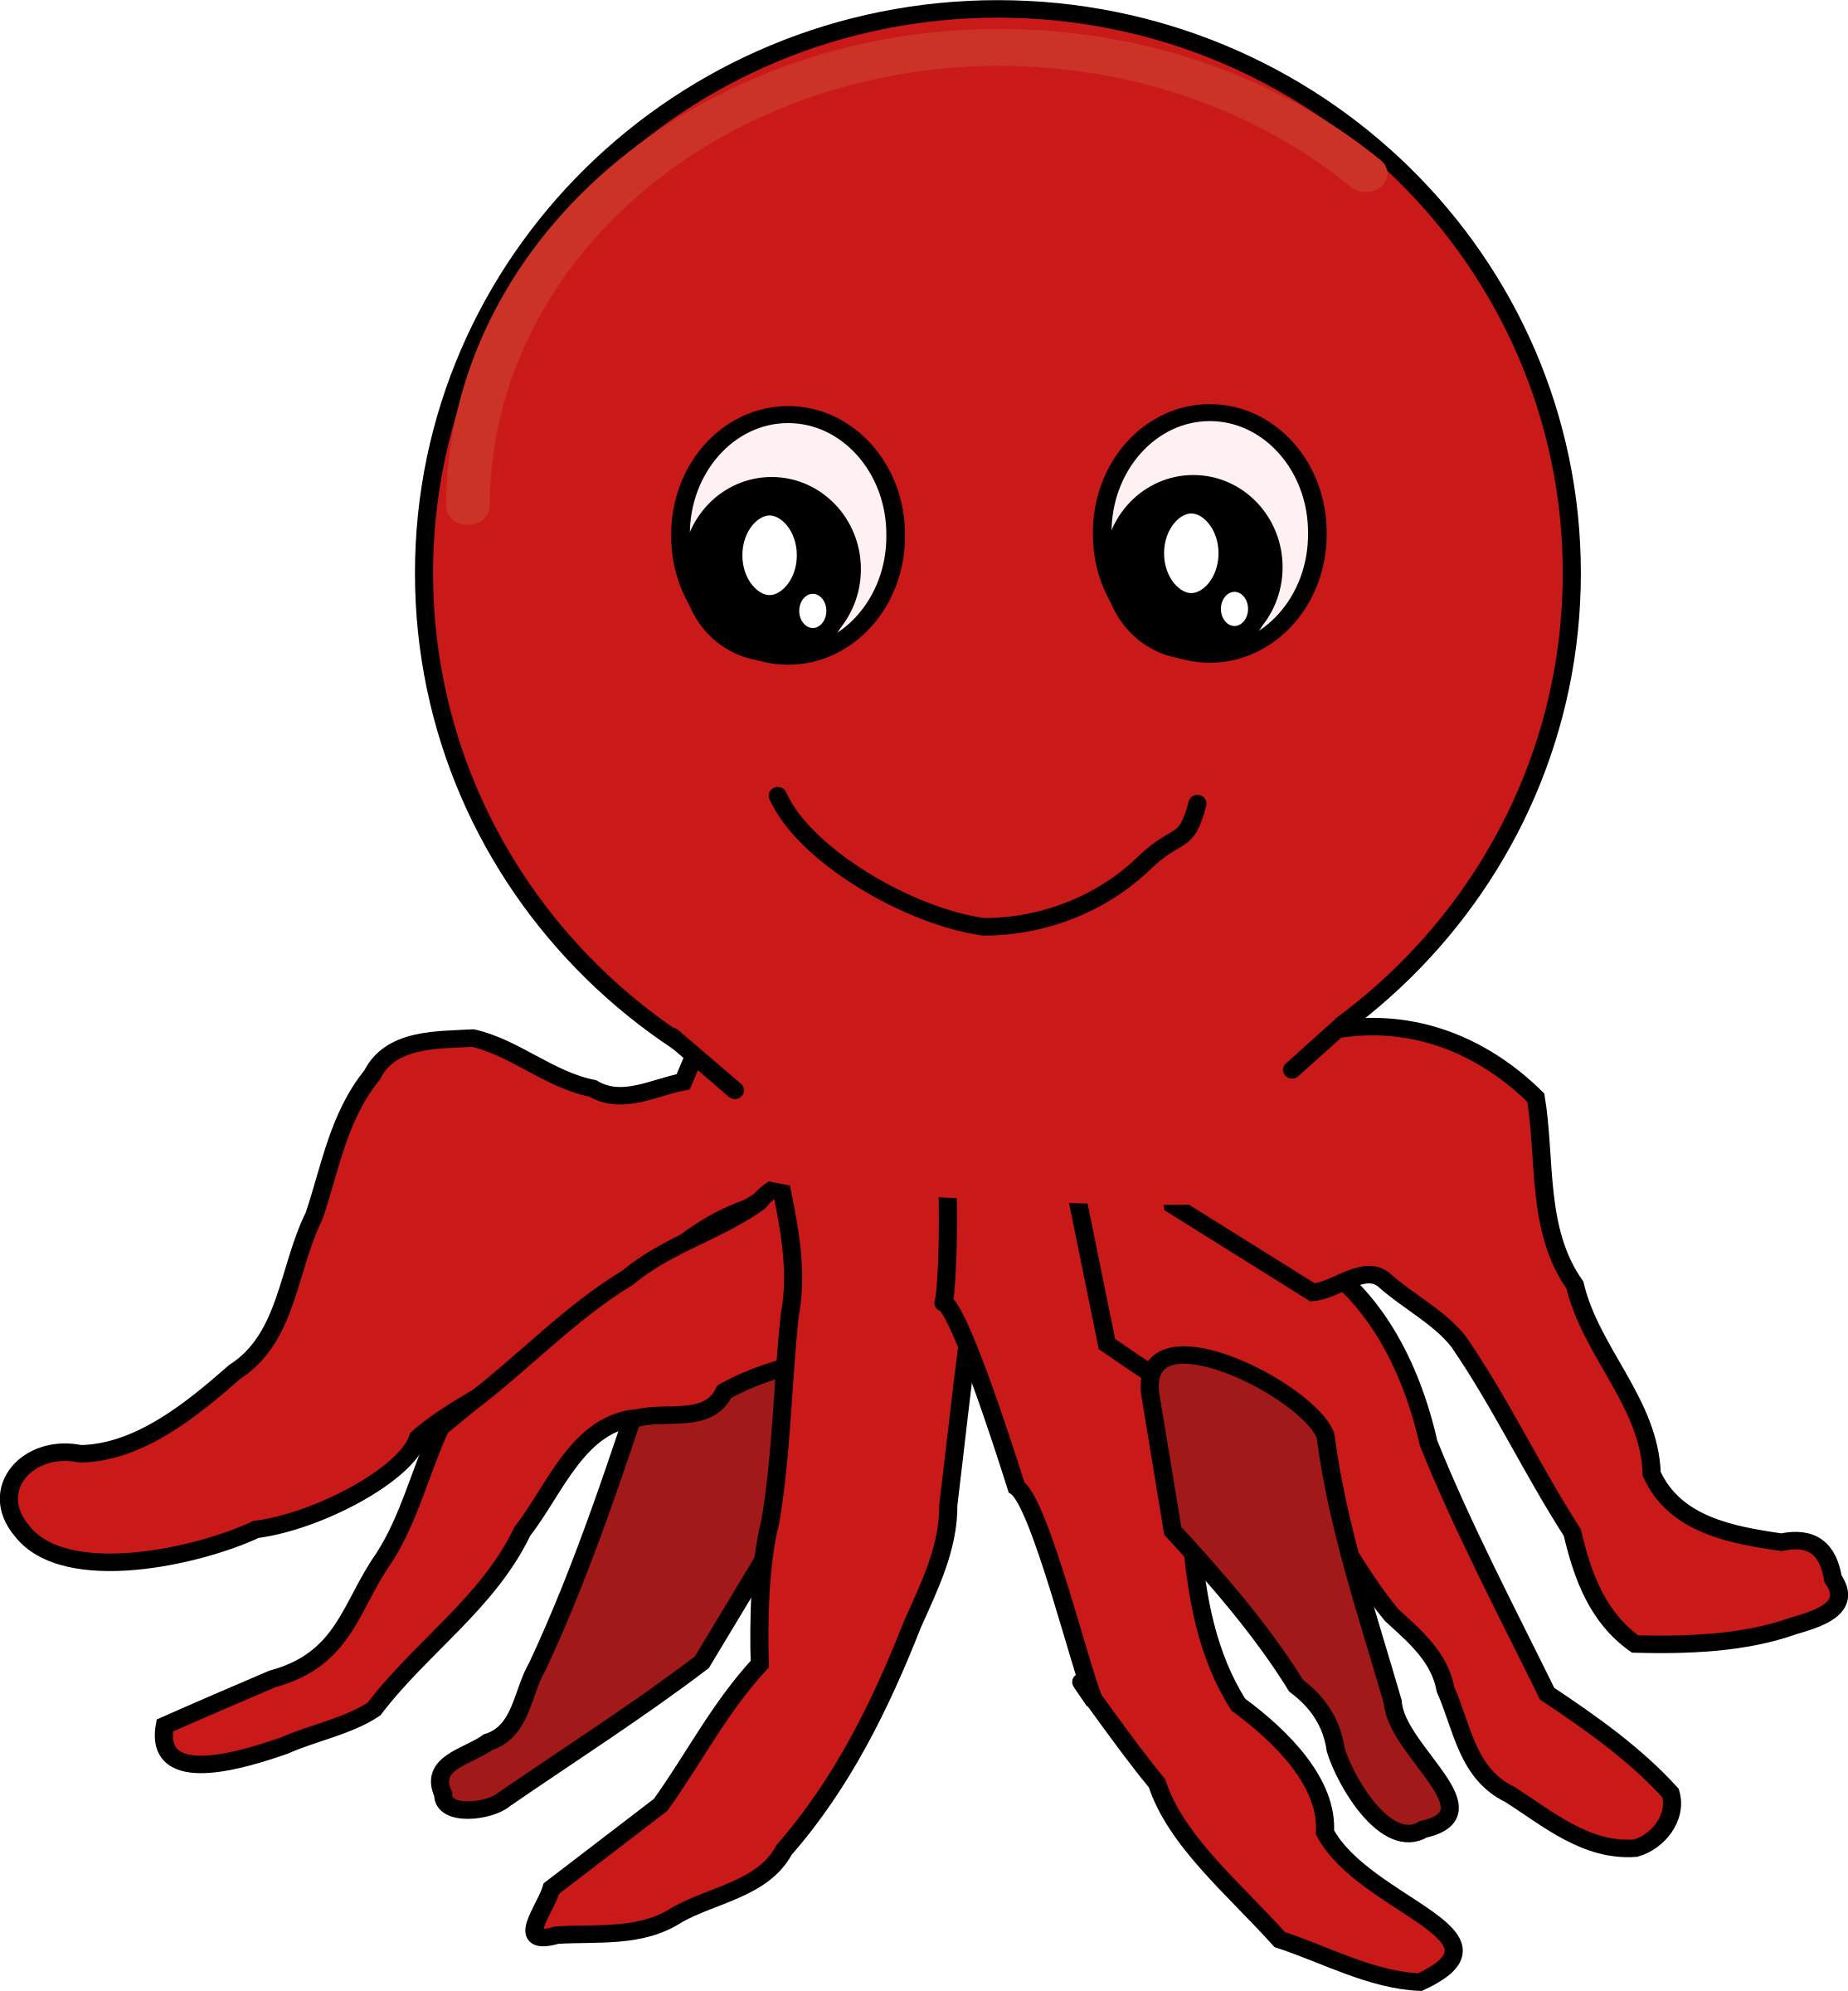 Red cartoon big image. Octopus clipart happy octopus